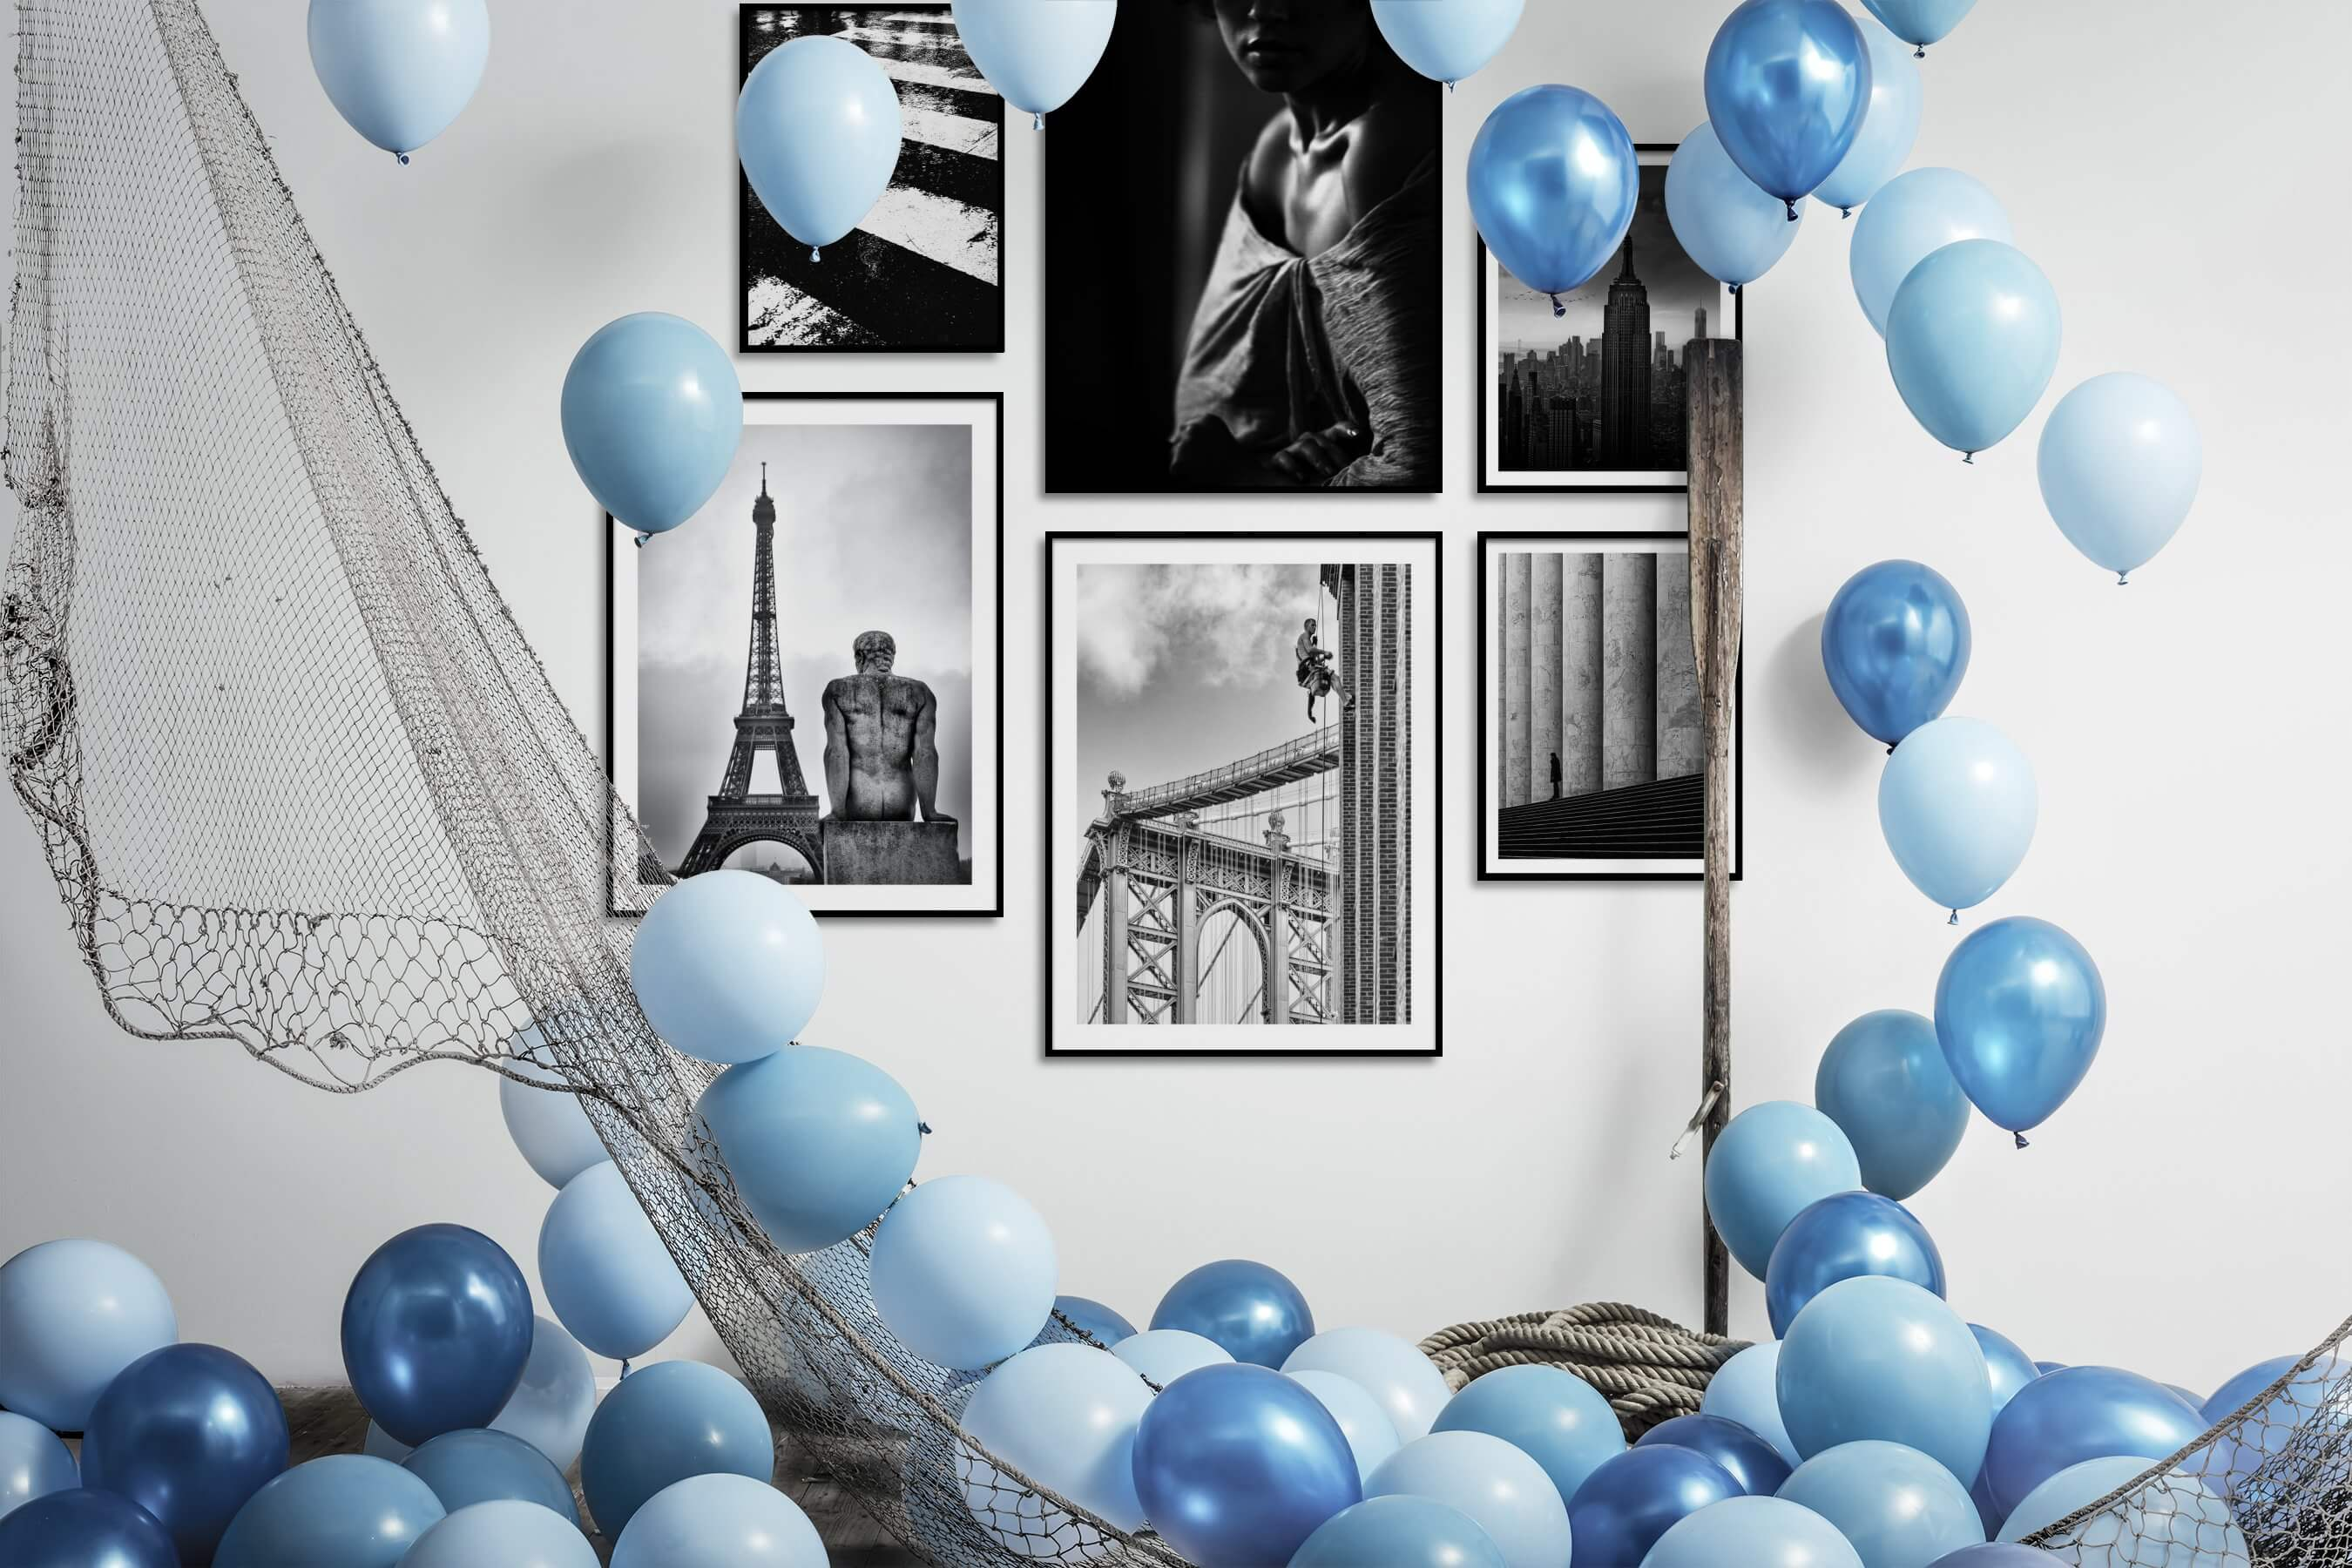 Gallery wall idea with six framed pictures arranged on a wall depicting Black & White, For the Moderate, City Life, Fashion & Beauty, and Americana